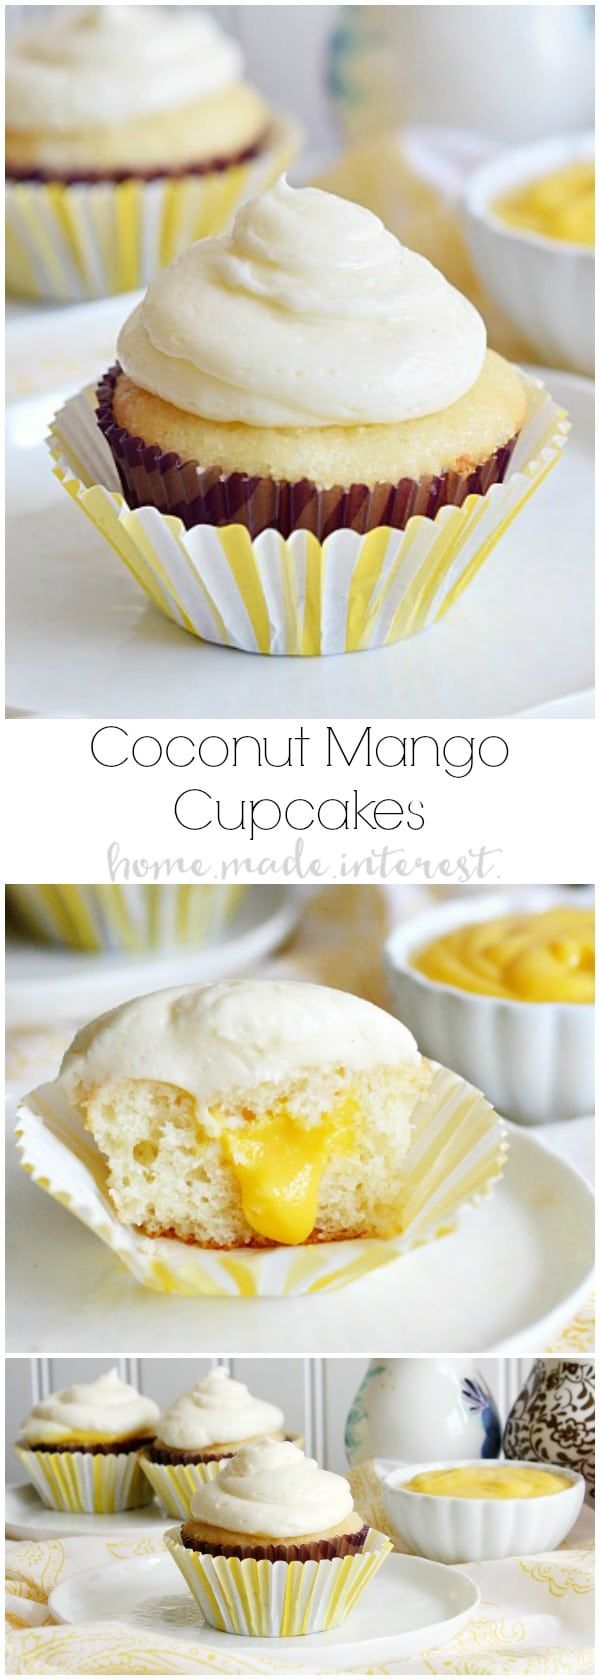 This coconut mango cupcake recipe is a tropical cupcake with a sweet coconut cake and filled with a tart mango curd. The homemade mango curd recipe is a perfect compliment to these cupcakes and also delicious as a thin mango filling in between layers of a cake.